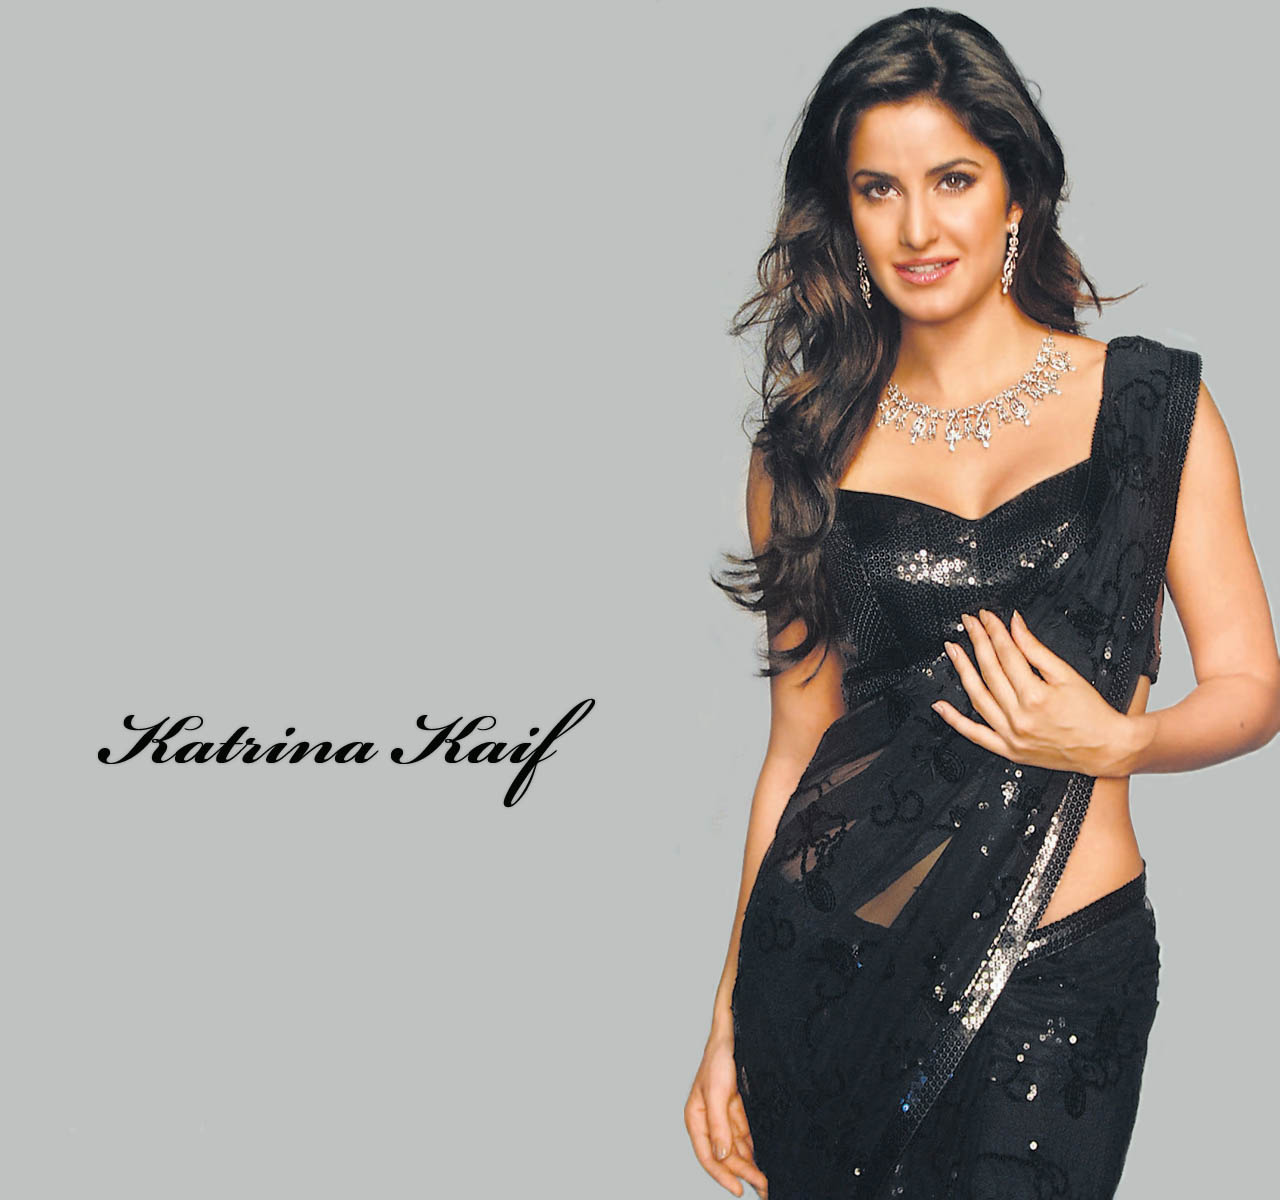 massasjesalong bollywood katrina